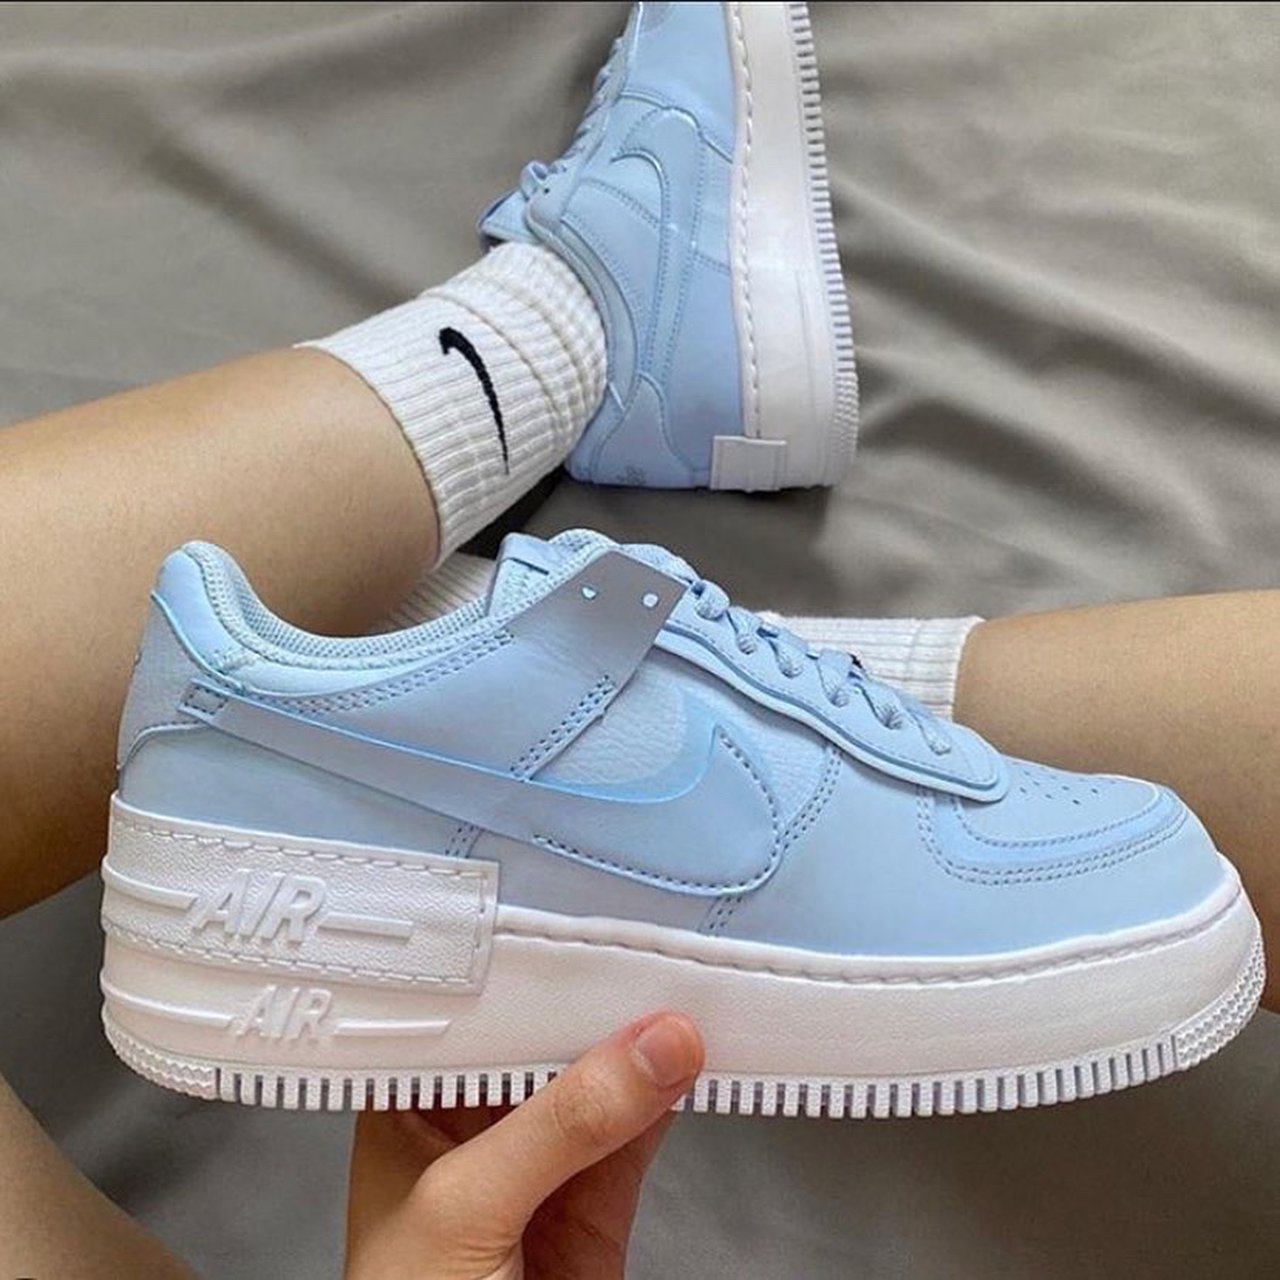 air force 1 shadow white hydrogen blue